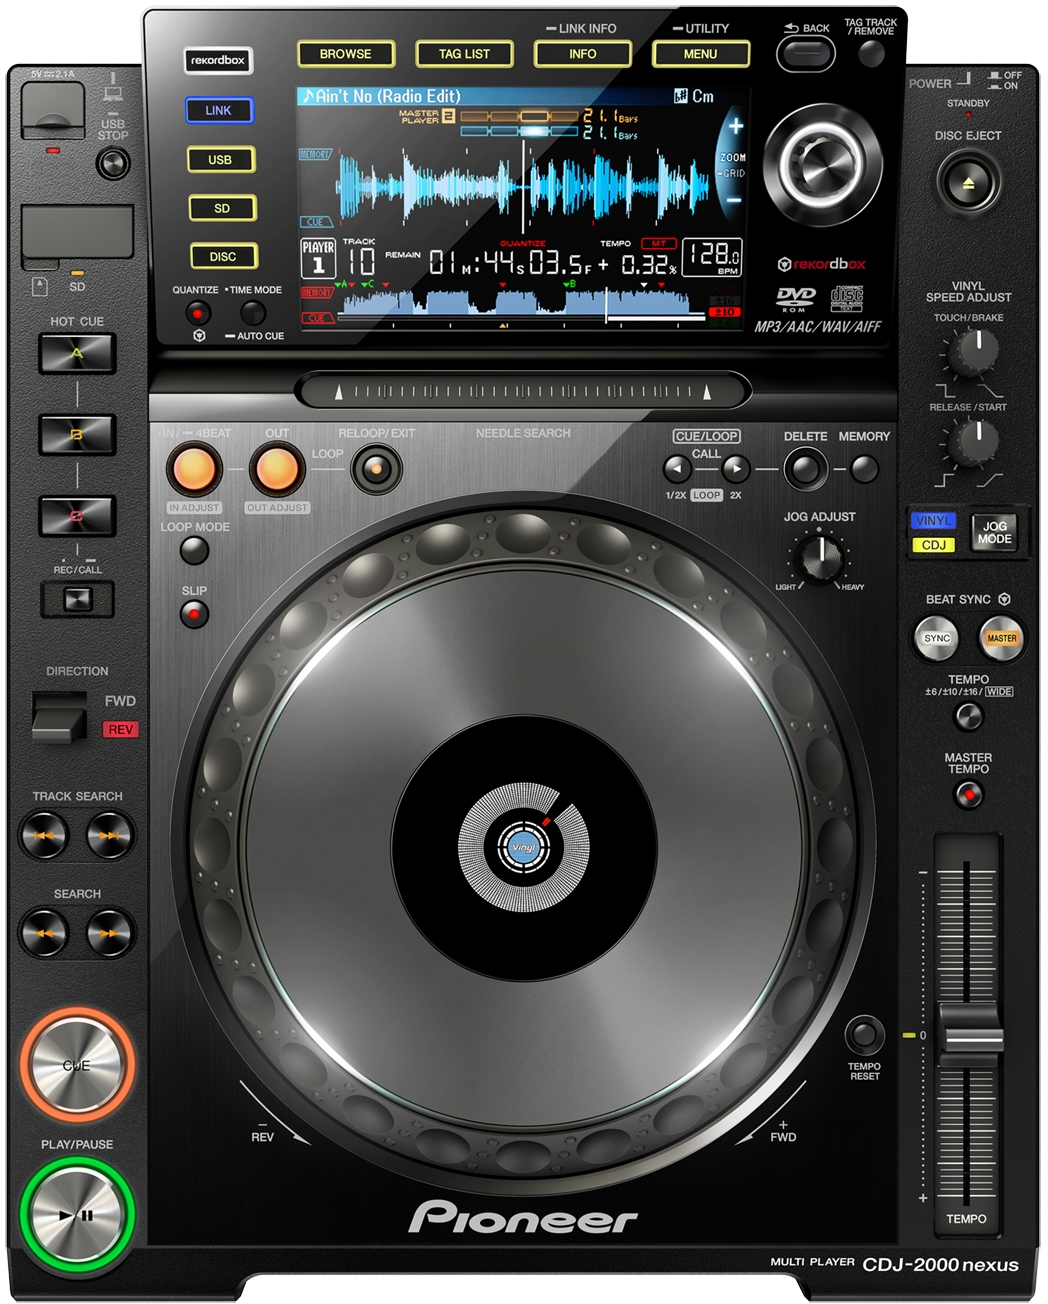 cdj the next generation pioneer reimagines dj cd player in networked mobile age of software. Black Bedroom Furniture Sets. Home Design Ideas